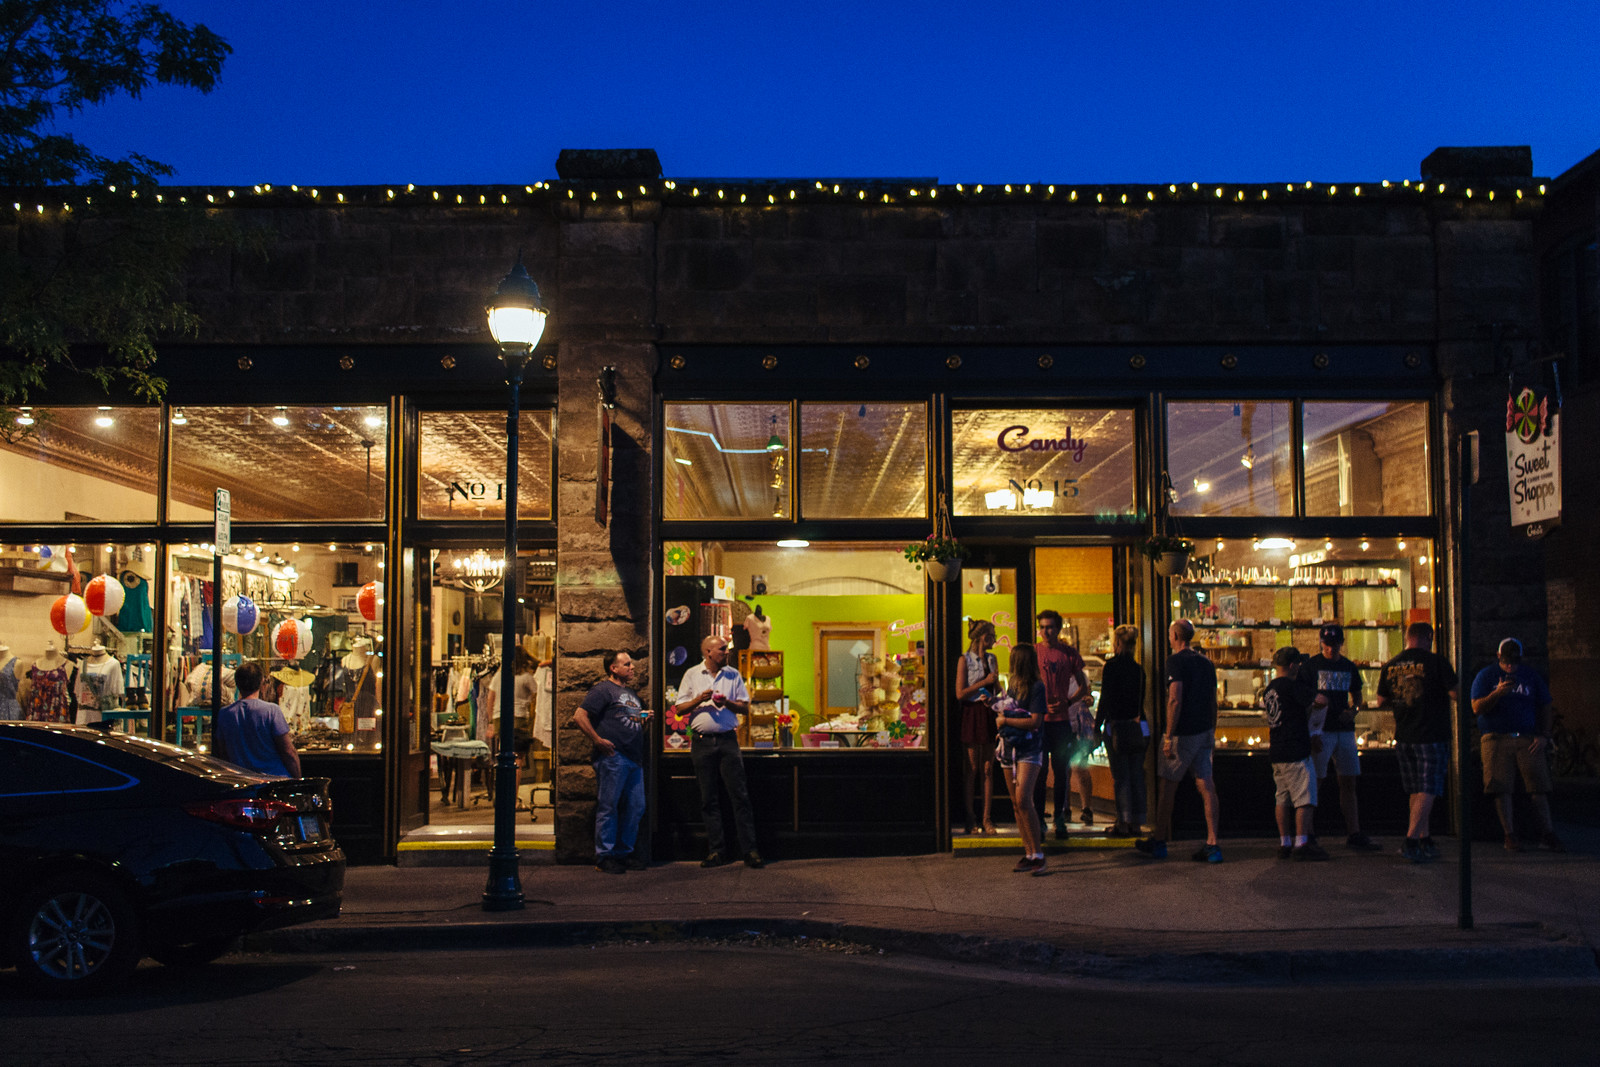 Pedestrians walk in front of a historic storefront at the blue hour in Flagstaff, Arizona